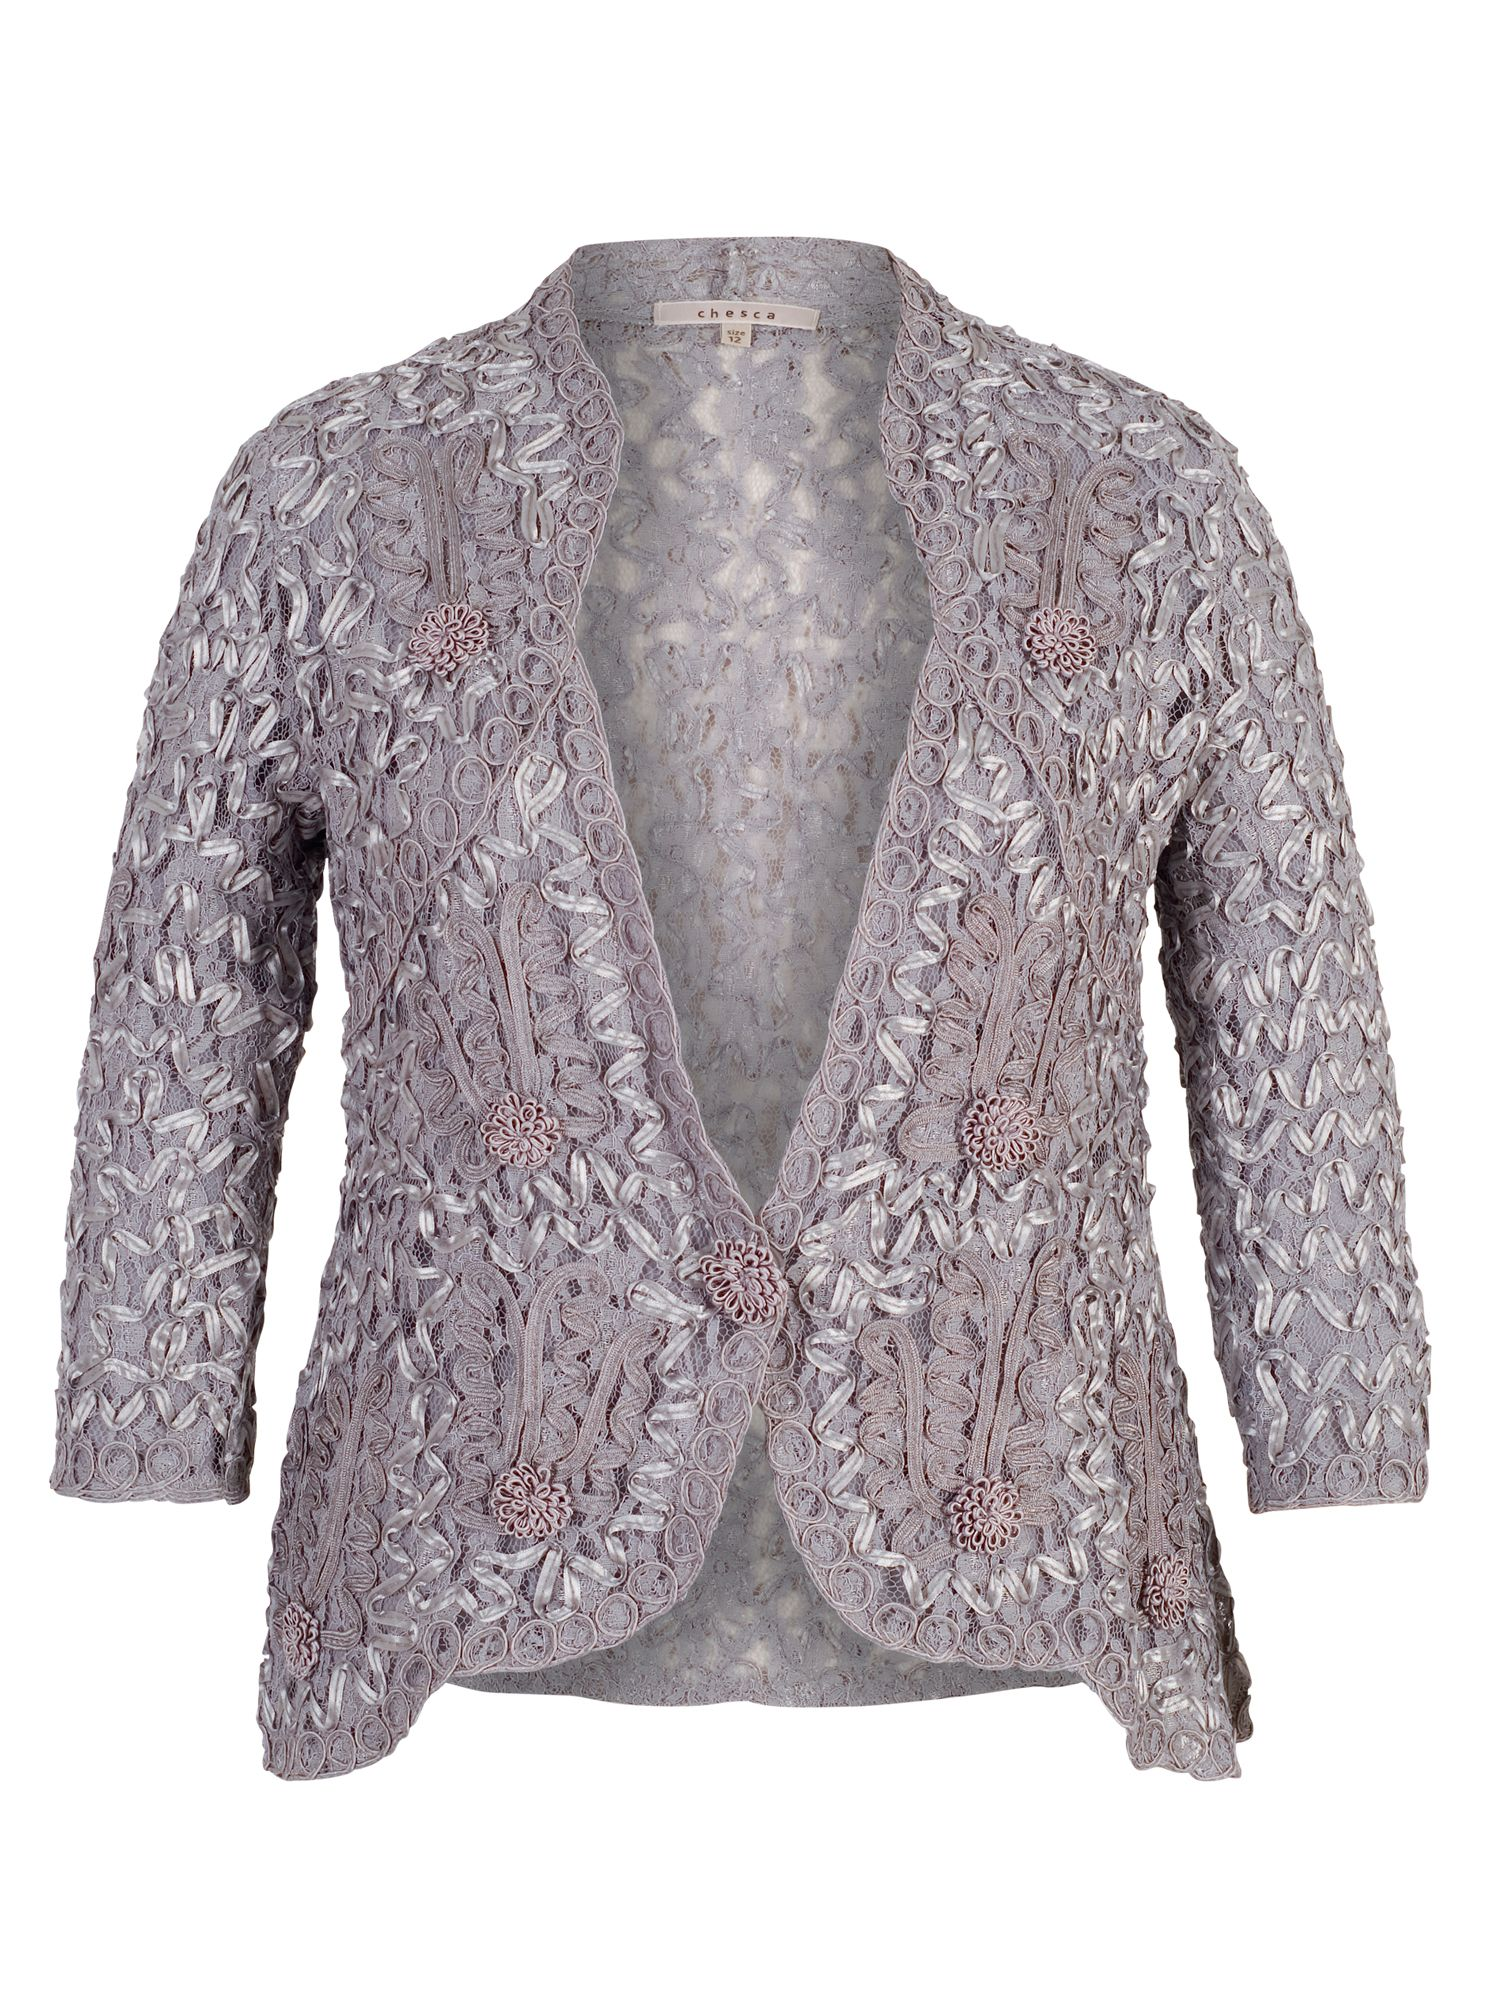 Chesca Lace Jacket with Cornelli Trim, Grey